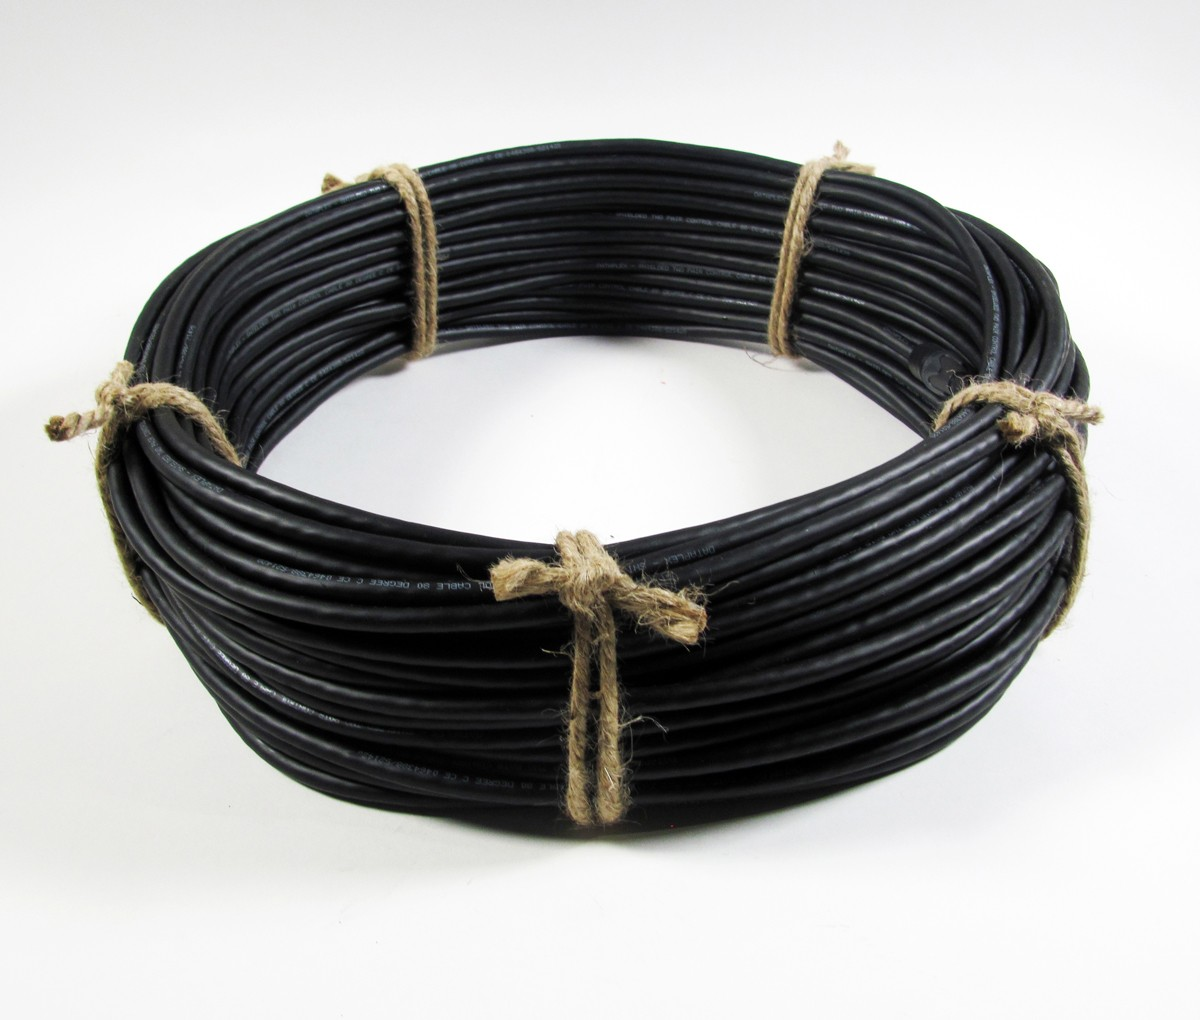 5-Pin DMX Cable 200'